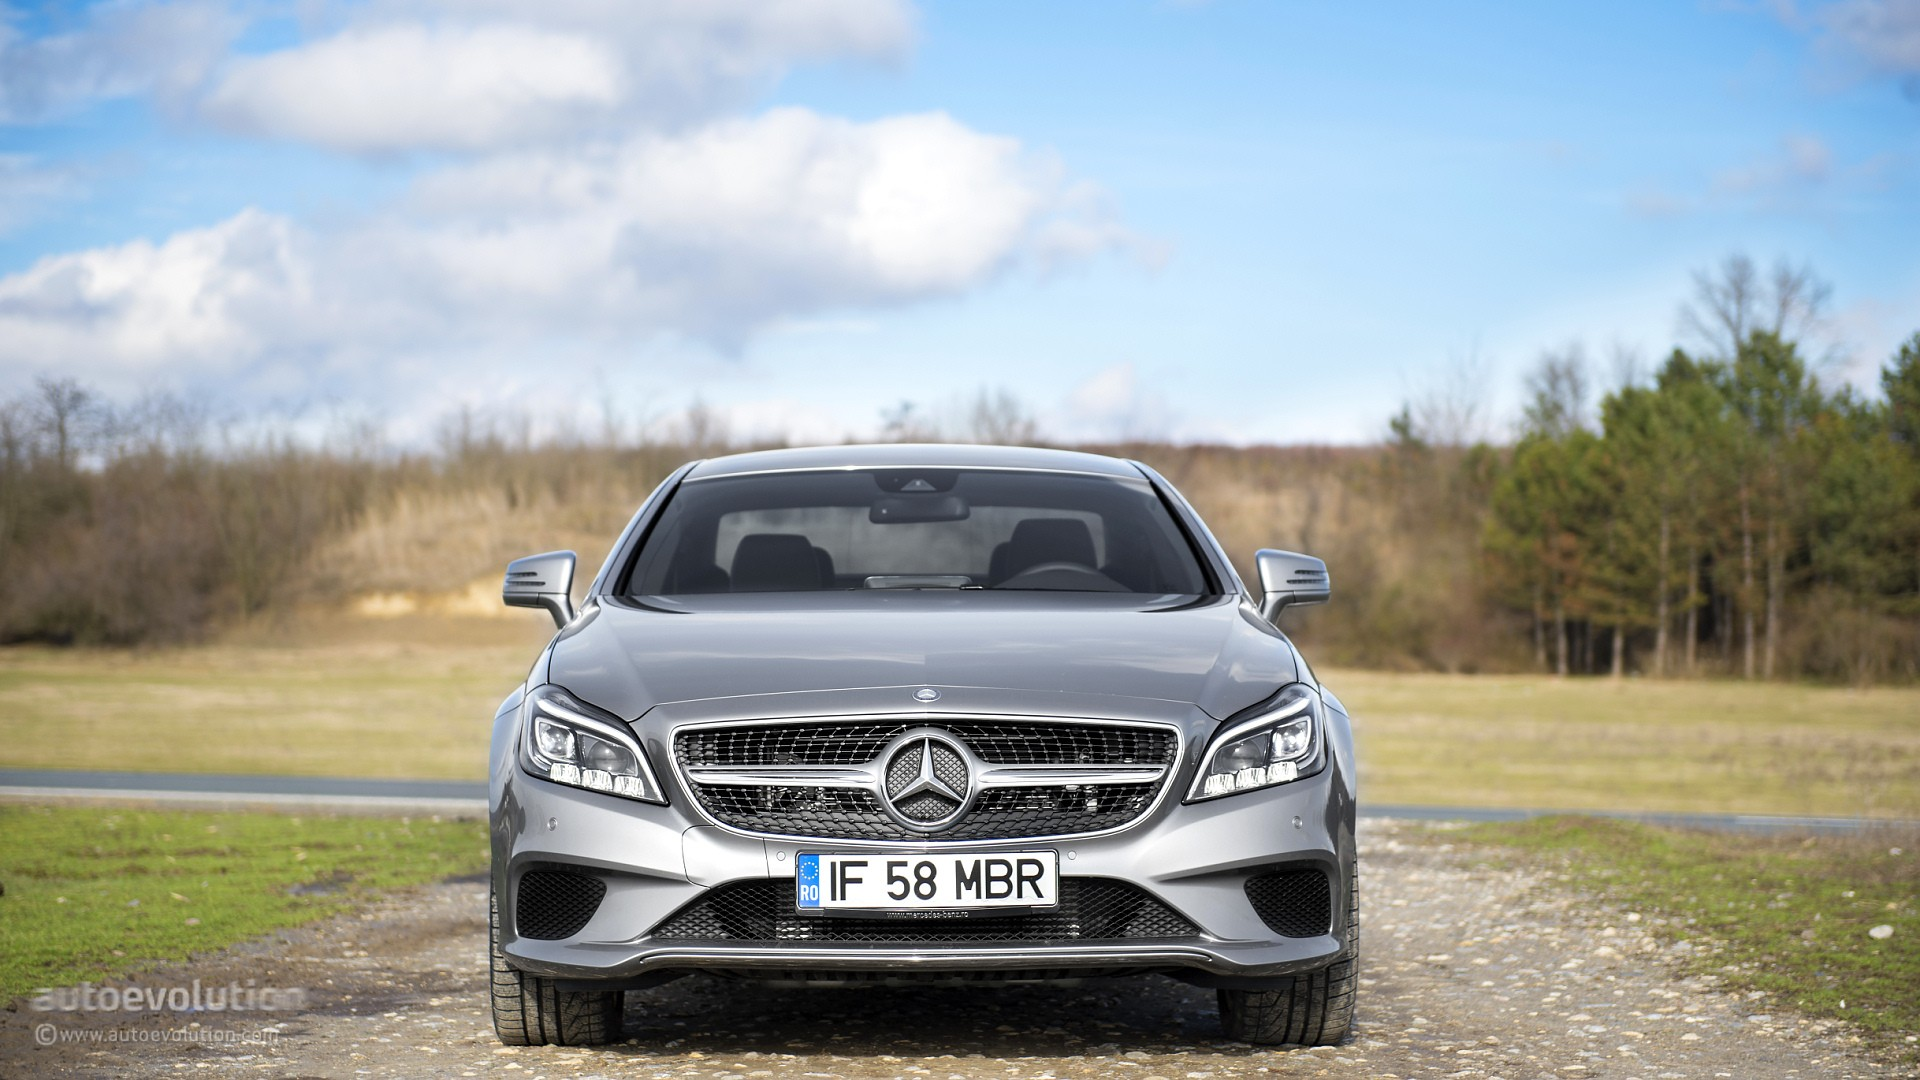 2015 mercedes benz cls class review page 2 autoevolution for Mercedes benz cls550 review